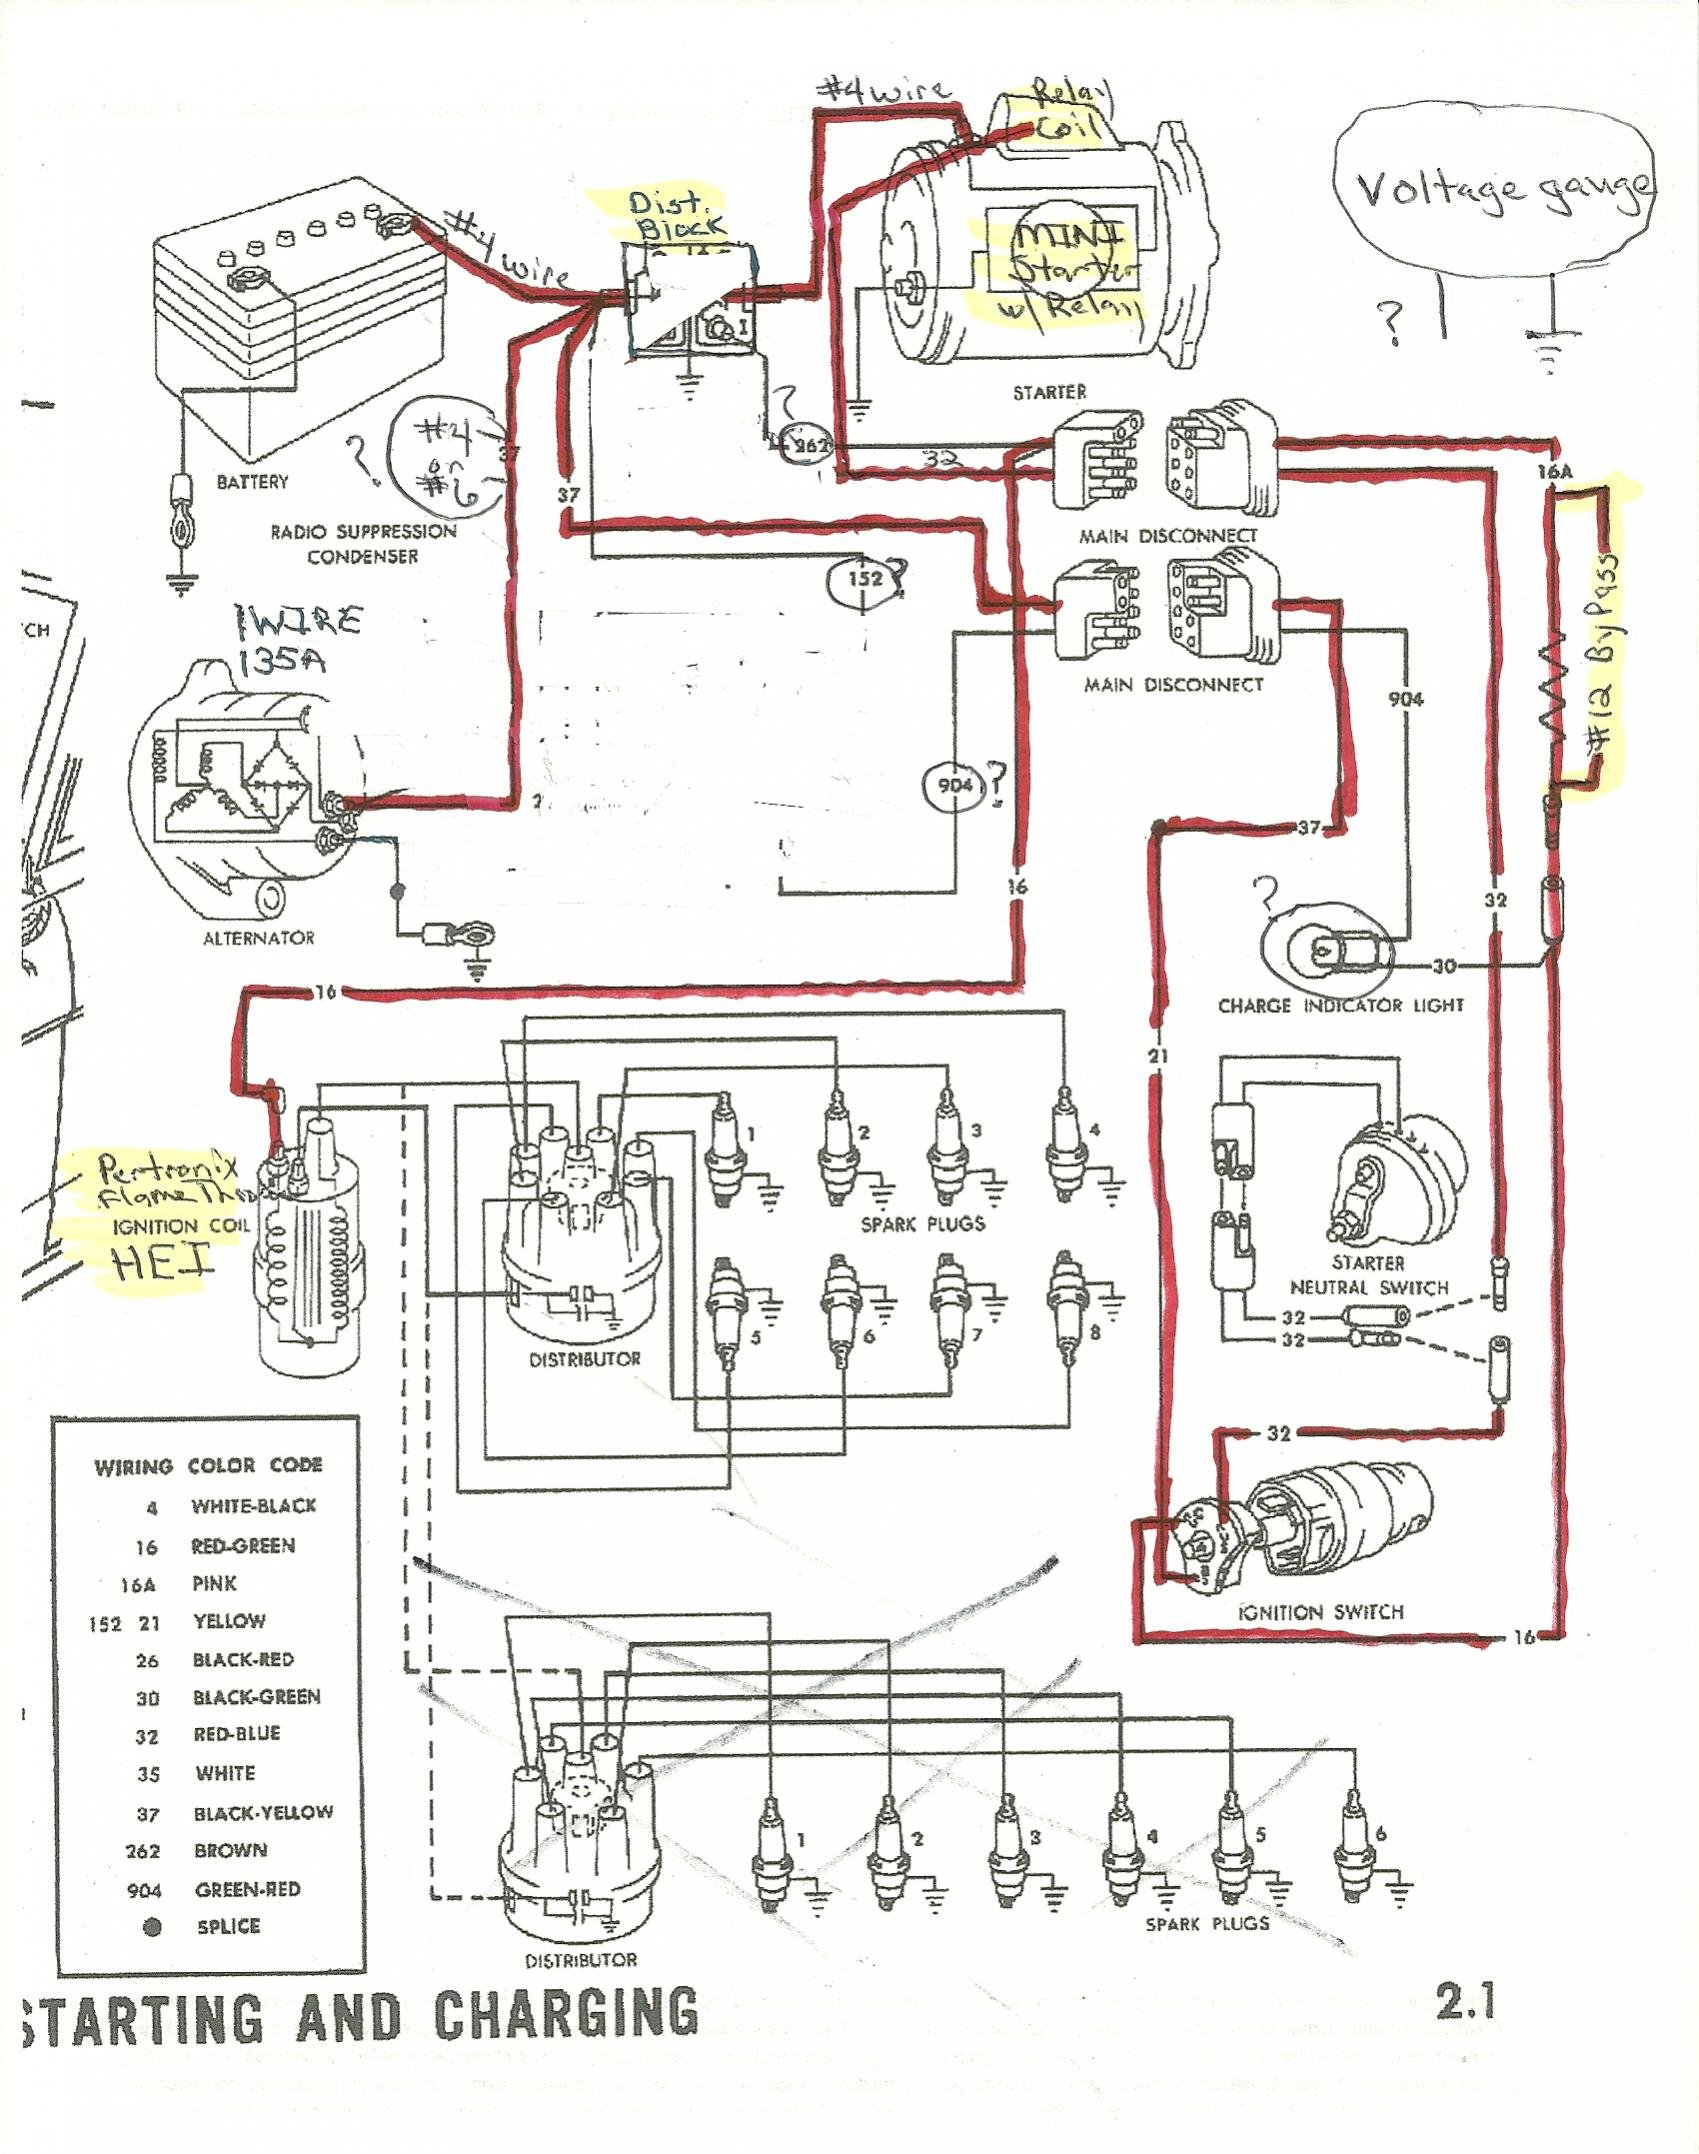 163469d1347246202 1965 alternator starter distributor wiring scan0001 1970 ford mustang mercury cougar original wiring diagram Ford Alternator Wiring Diagram at panicattacktreatment.co